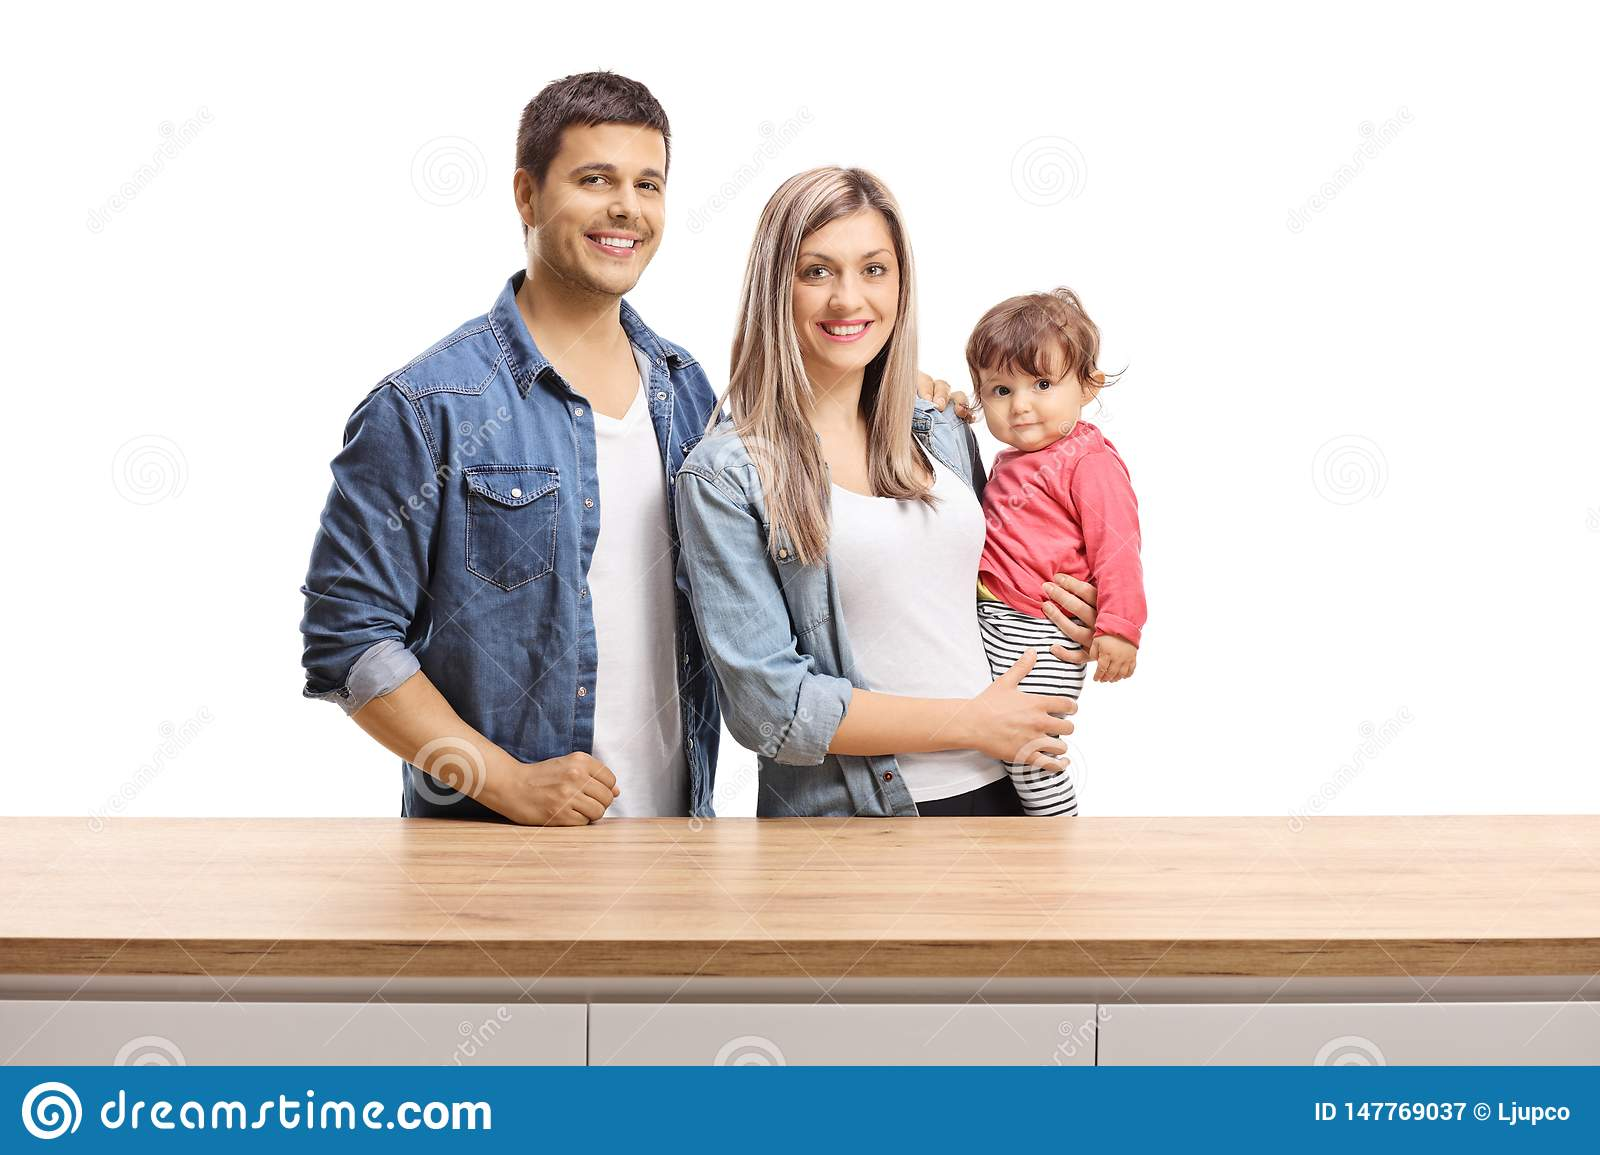 Young family of a mother, father and a baby girl posing behind a wooden counter